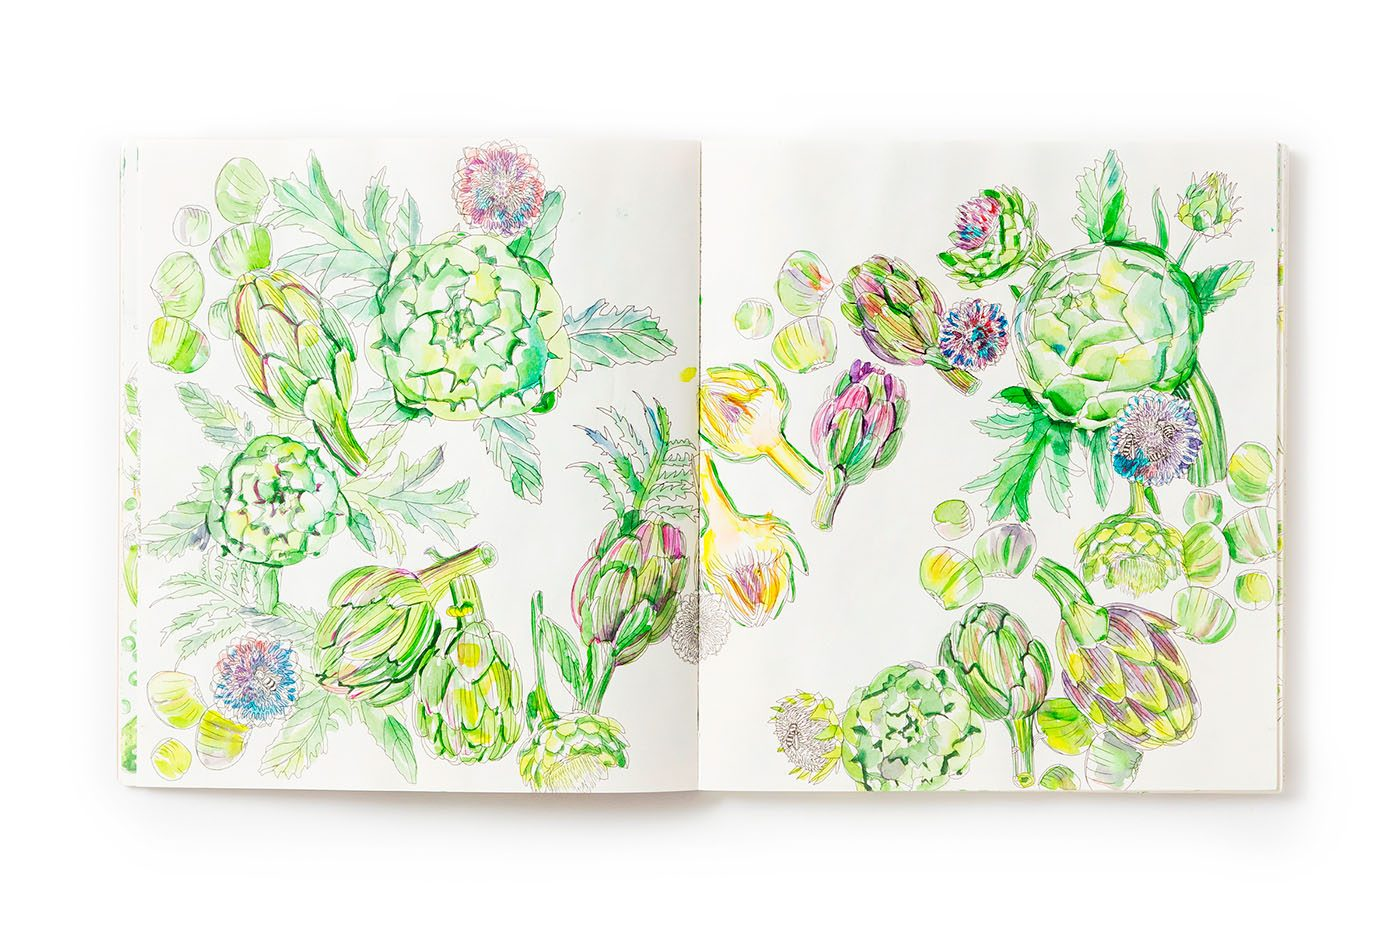 Limited edition, Edible Paradise: A Coloring Book of Seasonal Fruits and Vegetables (Rizzoli)